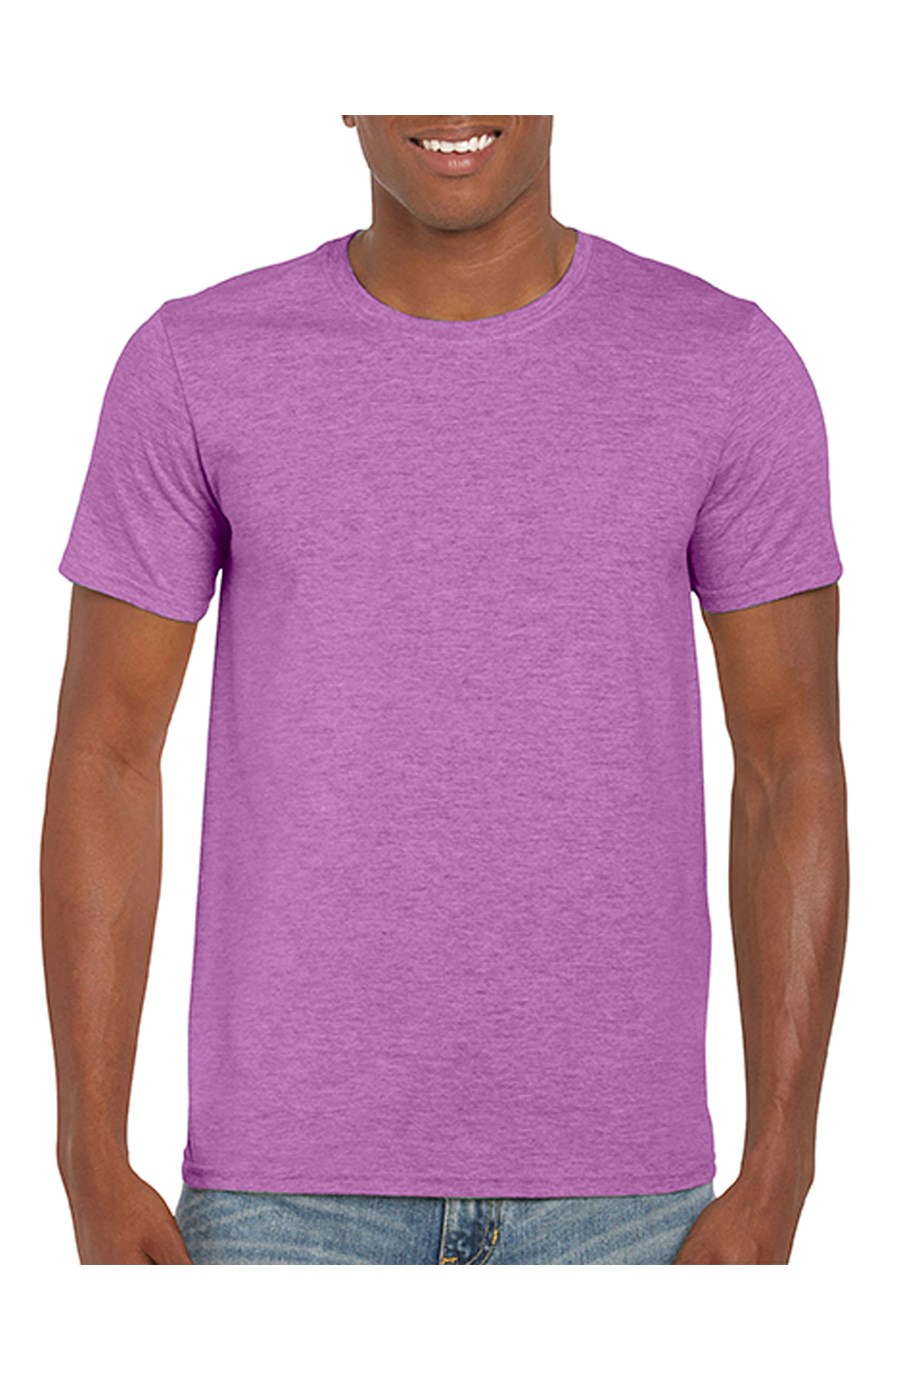 heather radiant orchid